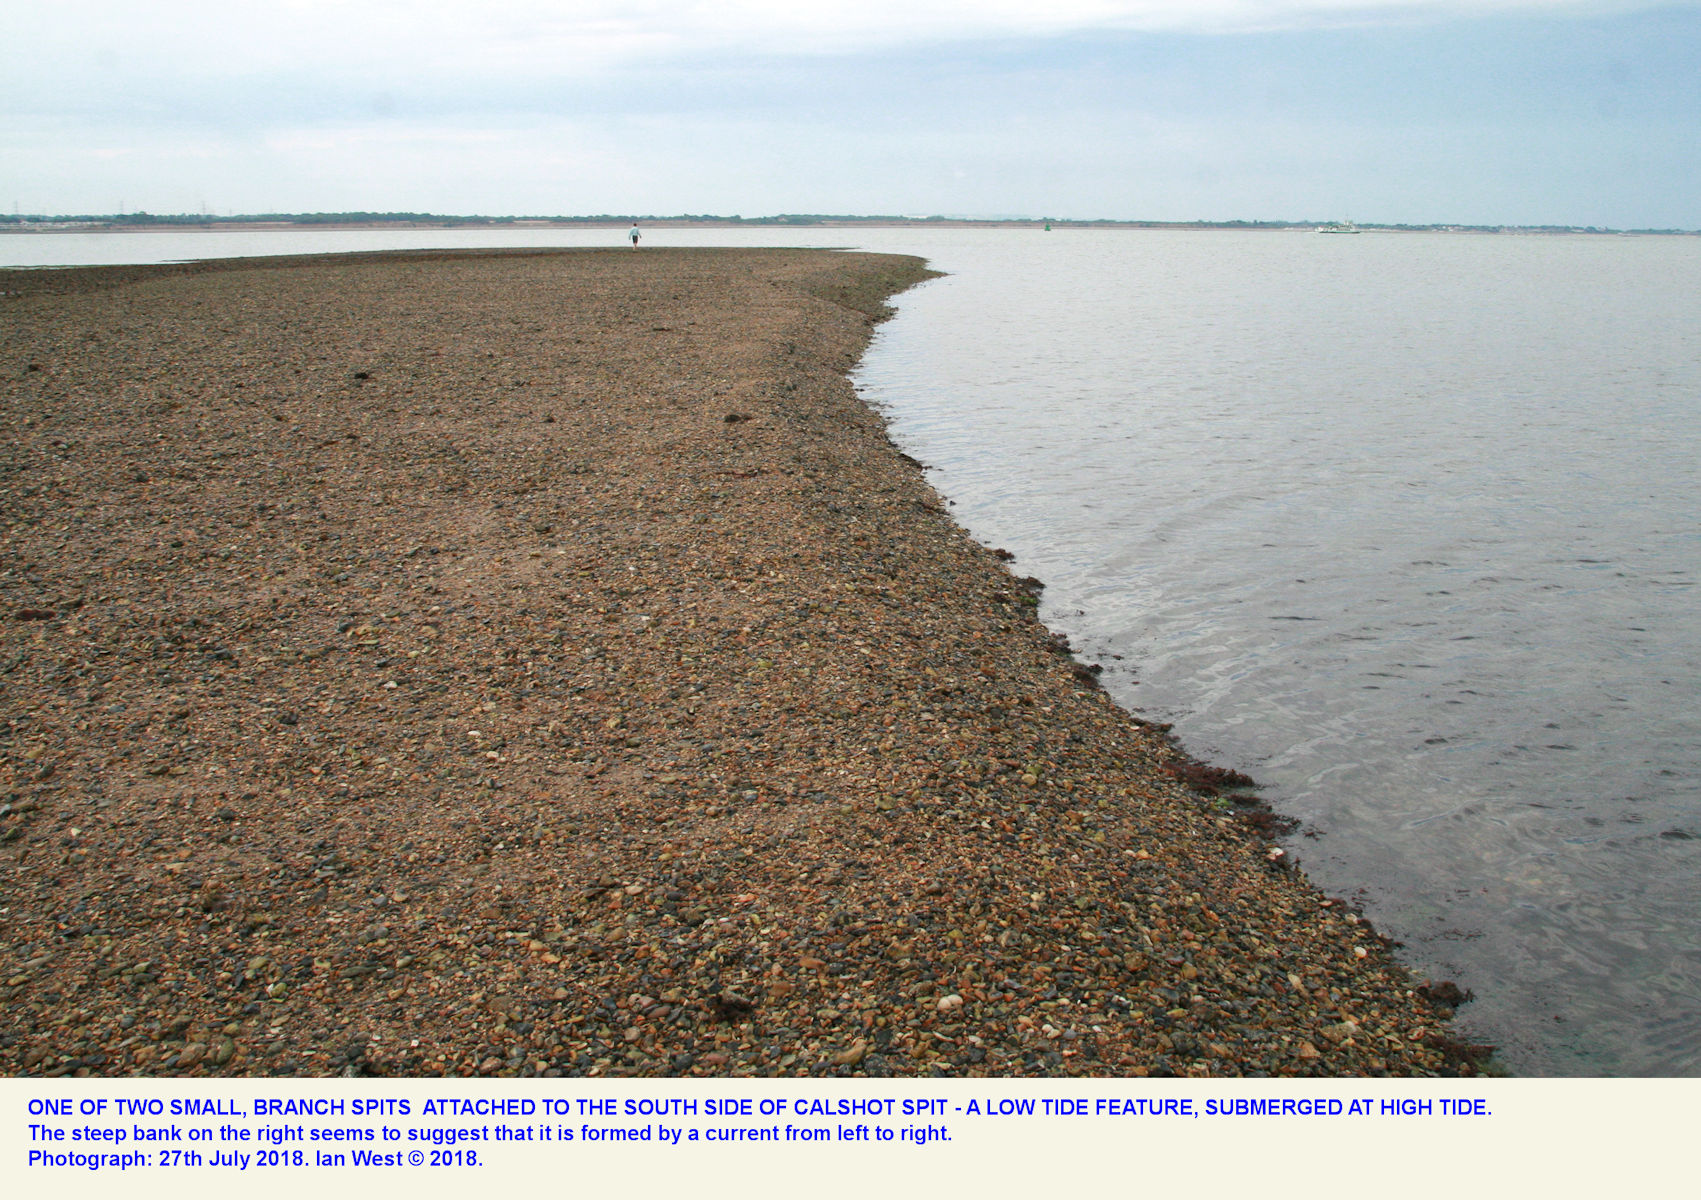 One of the low-tide, subsidiary spits of dark shingle, near the middle of Calshot Spit, seen at low tide, 27th June 2018, with a person in the distance for scale